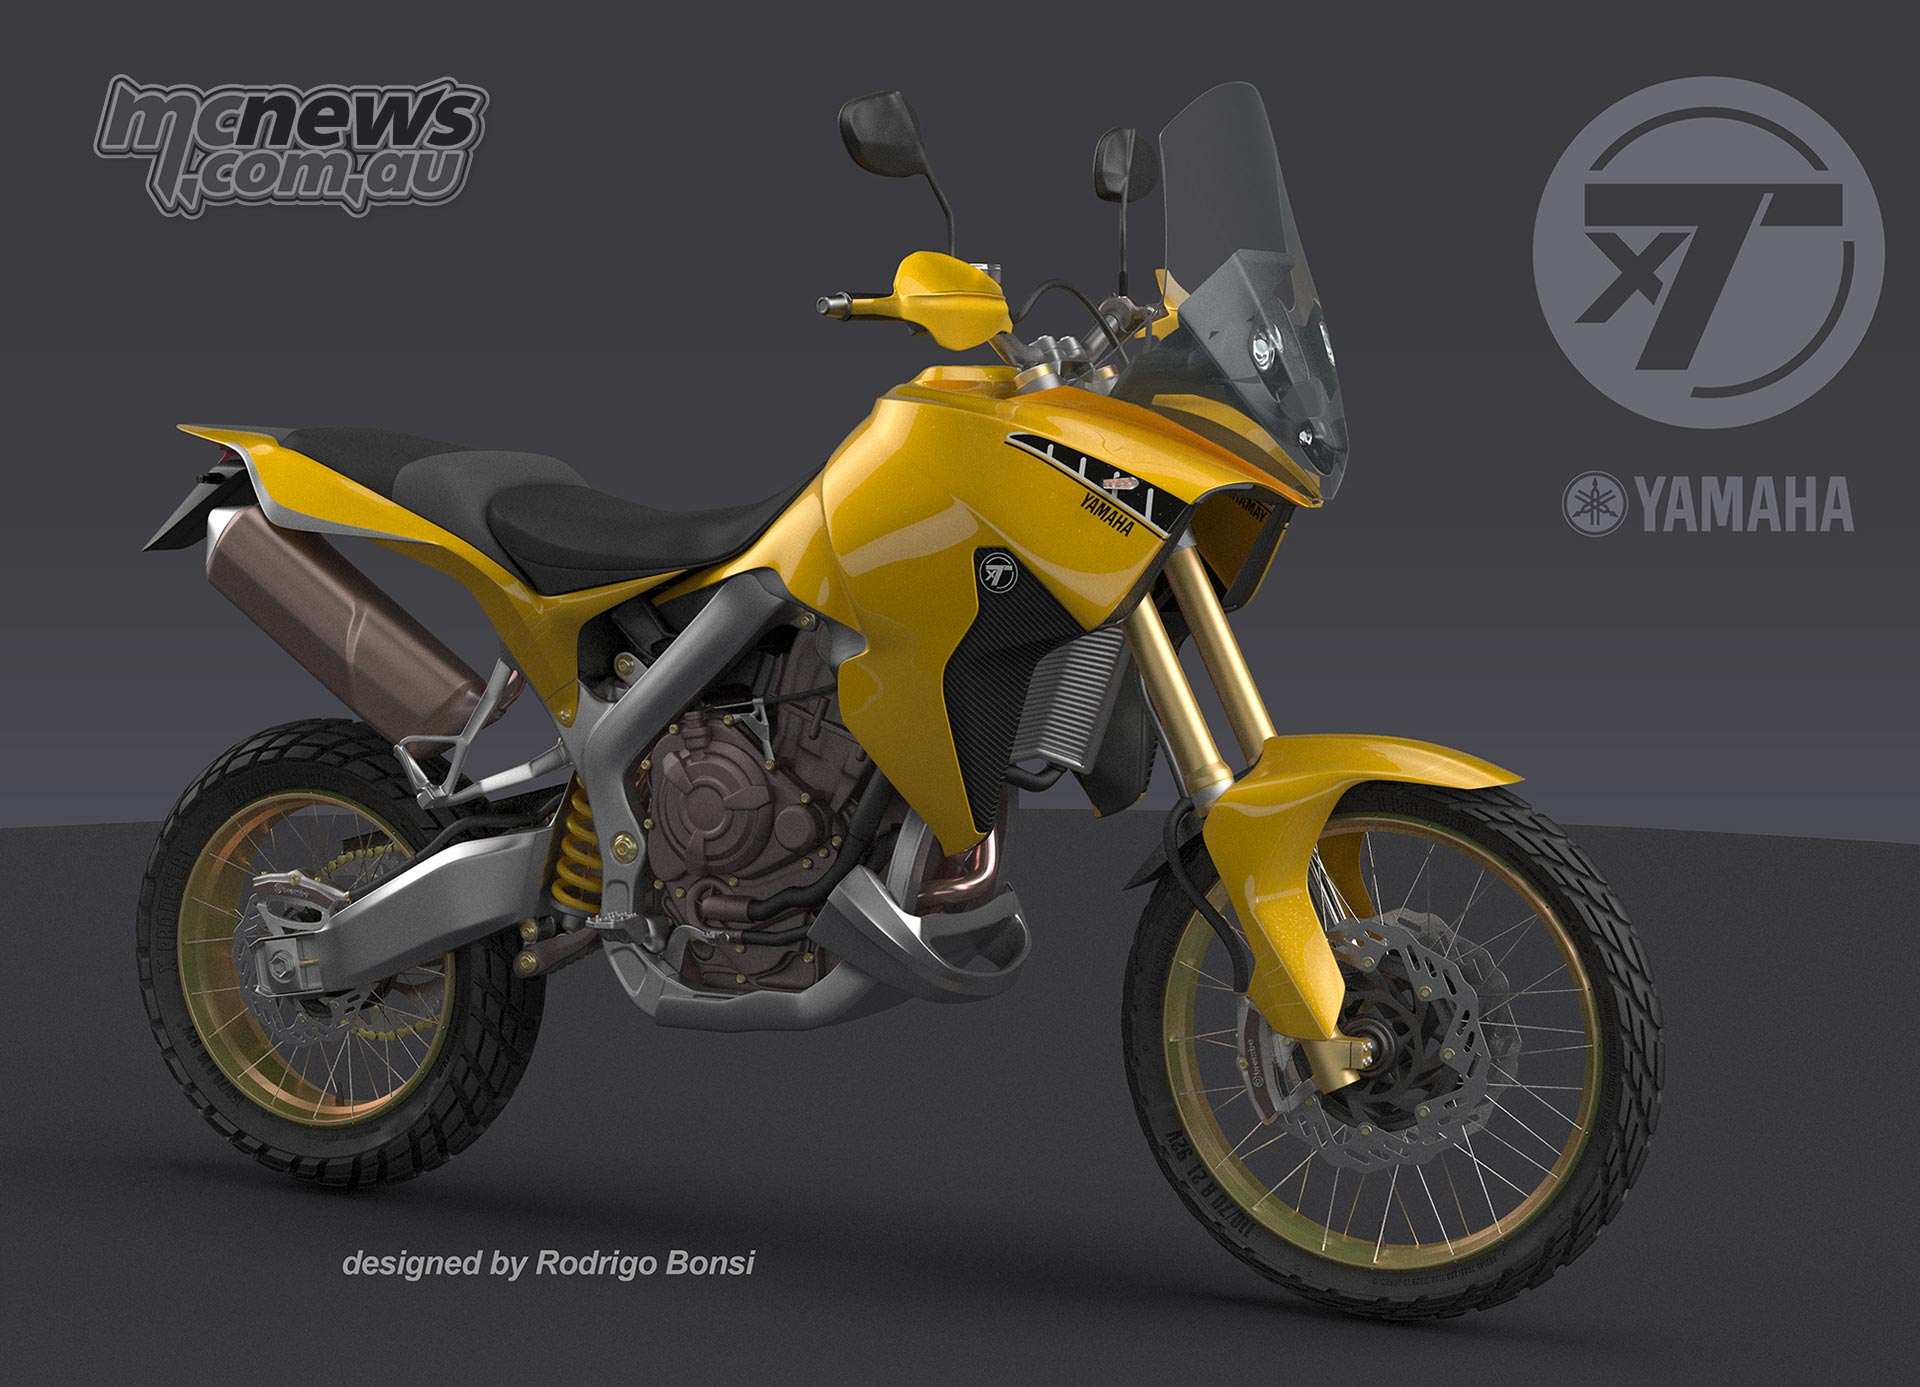 xT7 concept design - Yamaha MT-07 based Tenere - By Rodrigo Bonsi